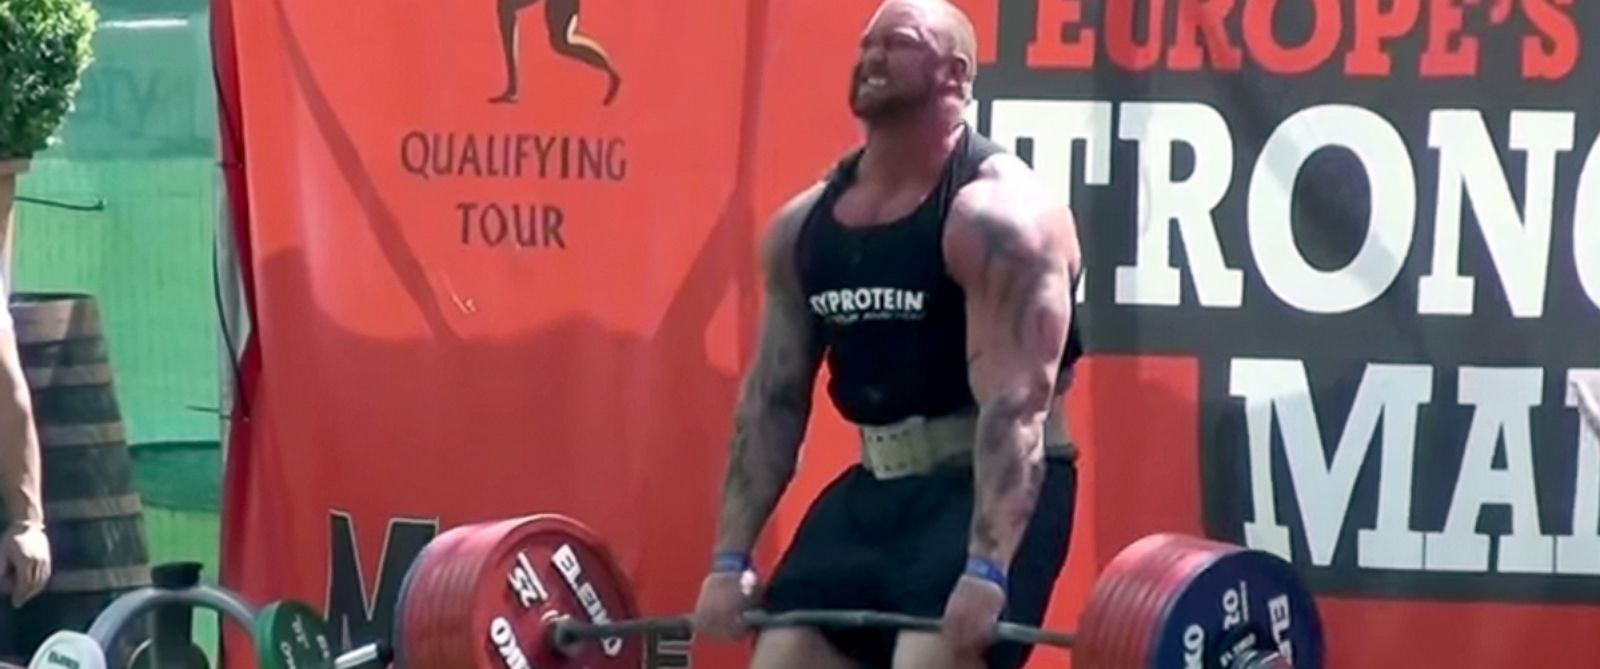 PHOTO: Hafthor Bjornsson who plays the Mountain in Game of Thrones competes in Europes Strongman Competition.